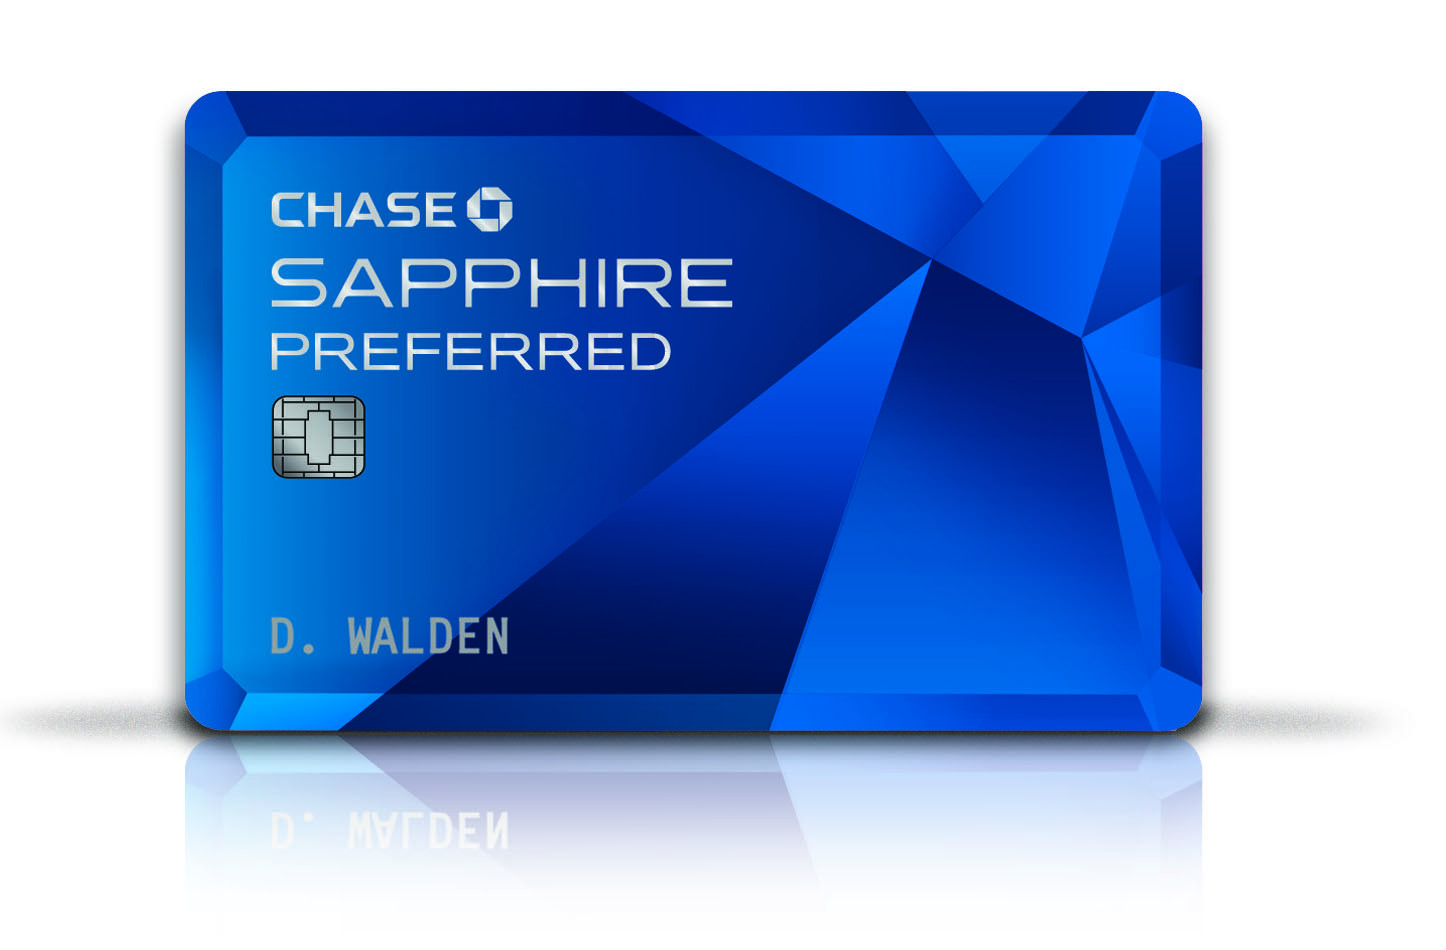 transfer chase credit card points